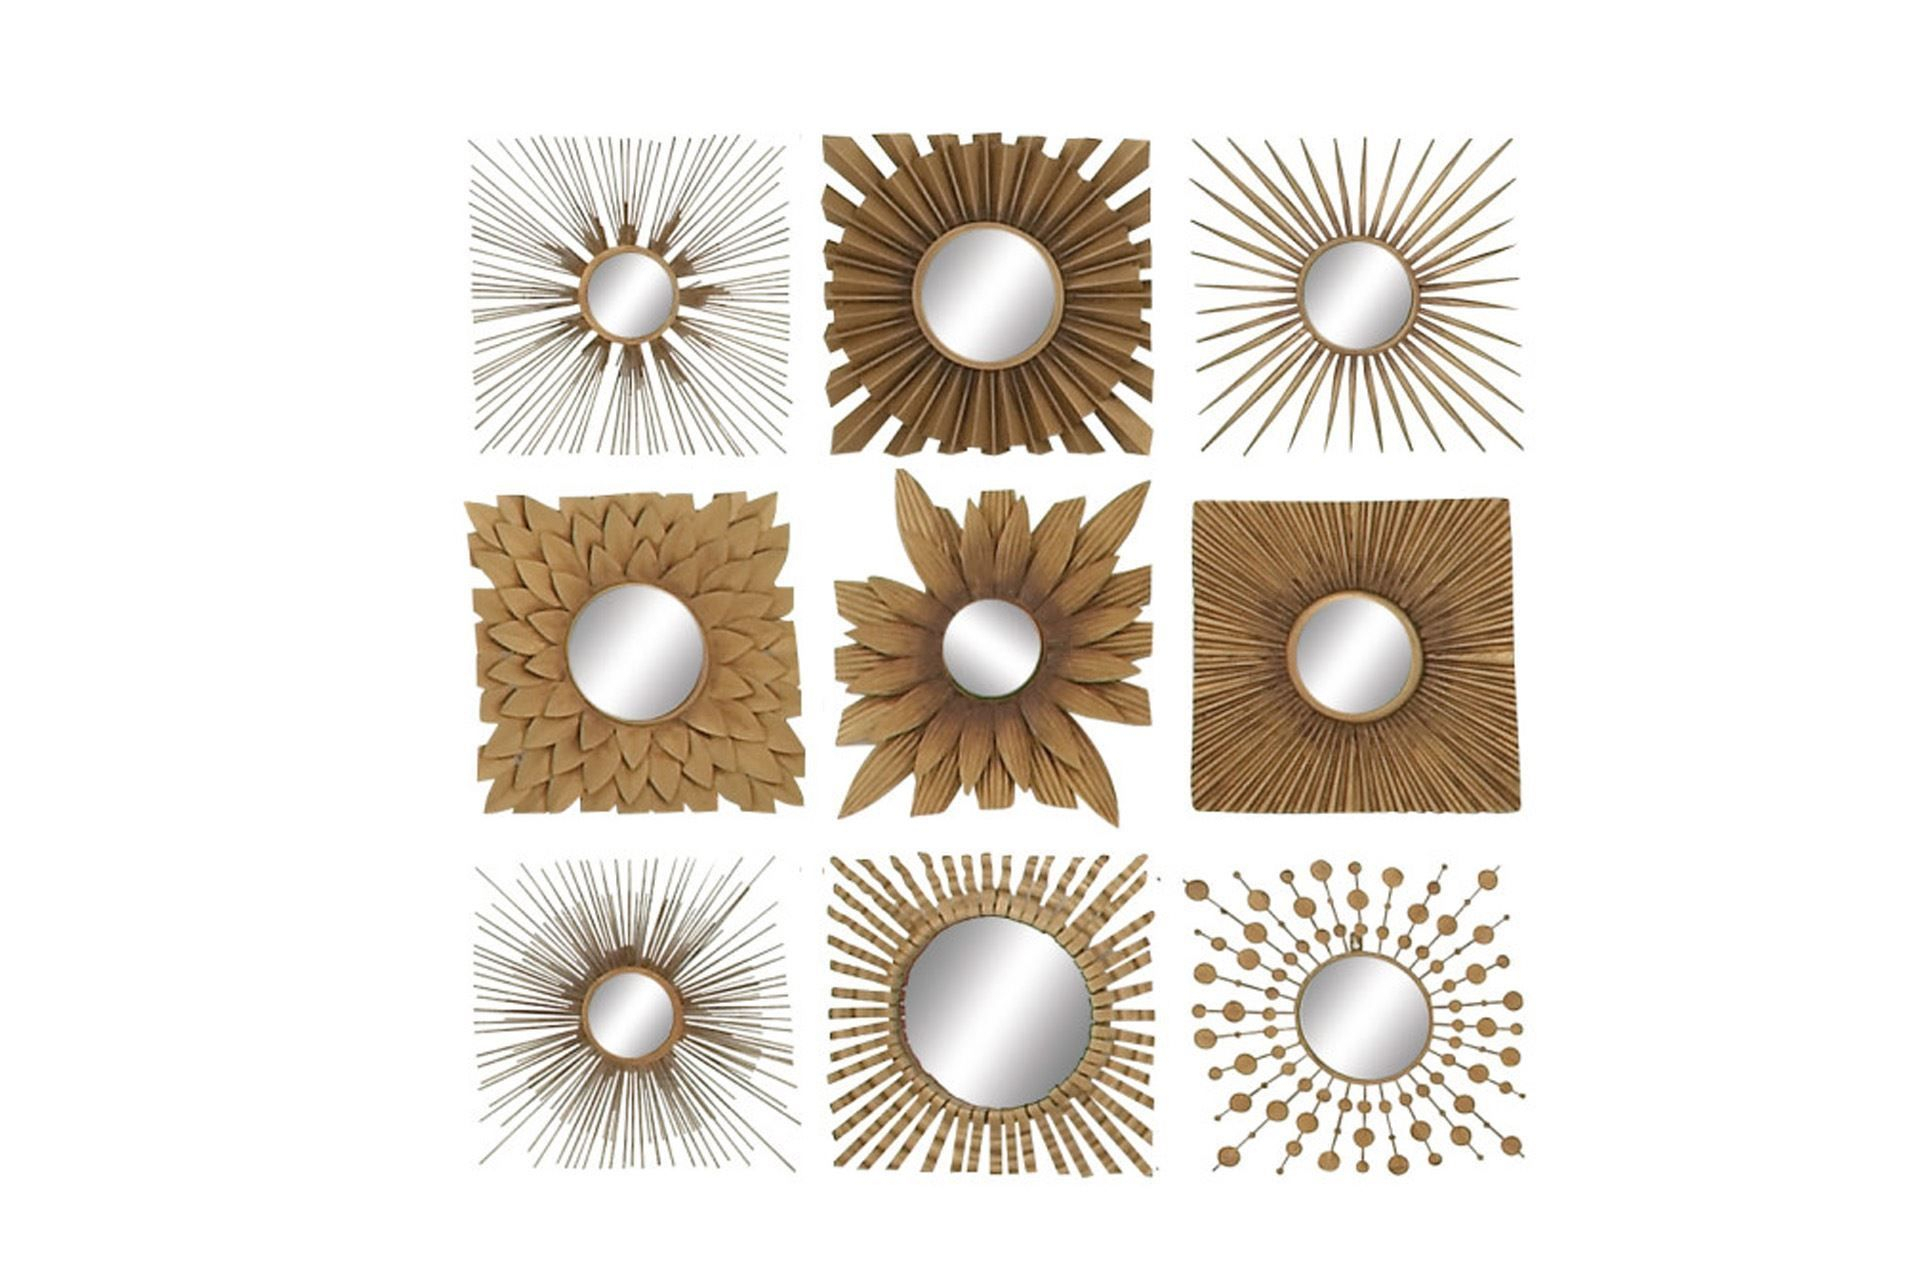 9 Piece Set Metal Wood Mirror Decor | White Oak Residence intended for 2 Piece Starburst Wall Decor Sets (Image 14 of 30)